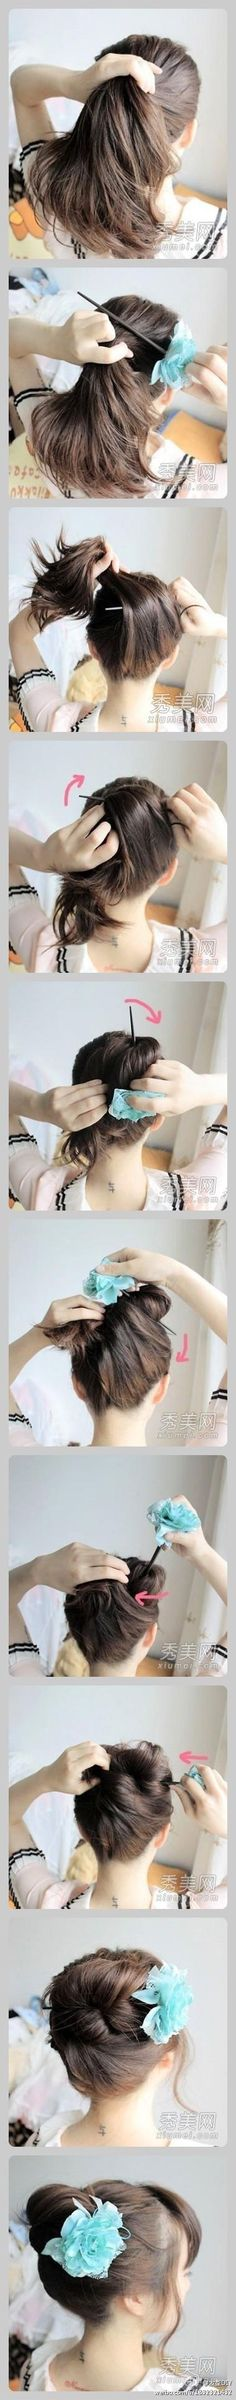 Updo with Flower Tutorial